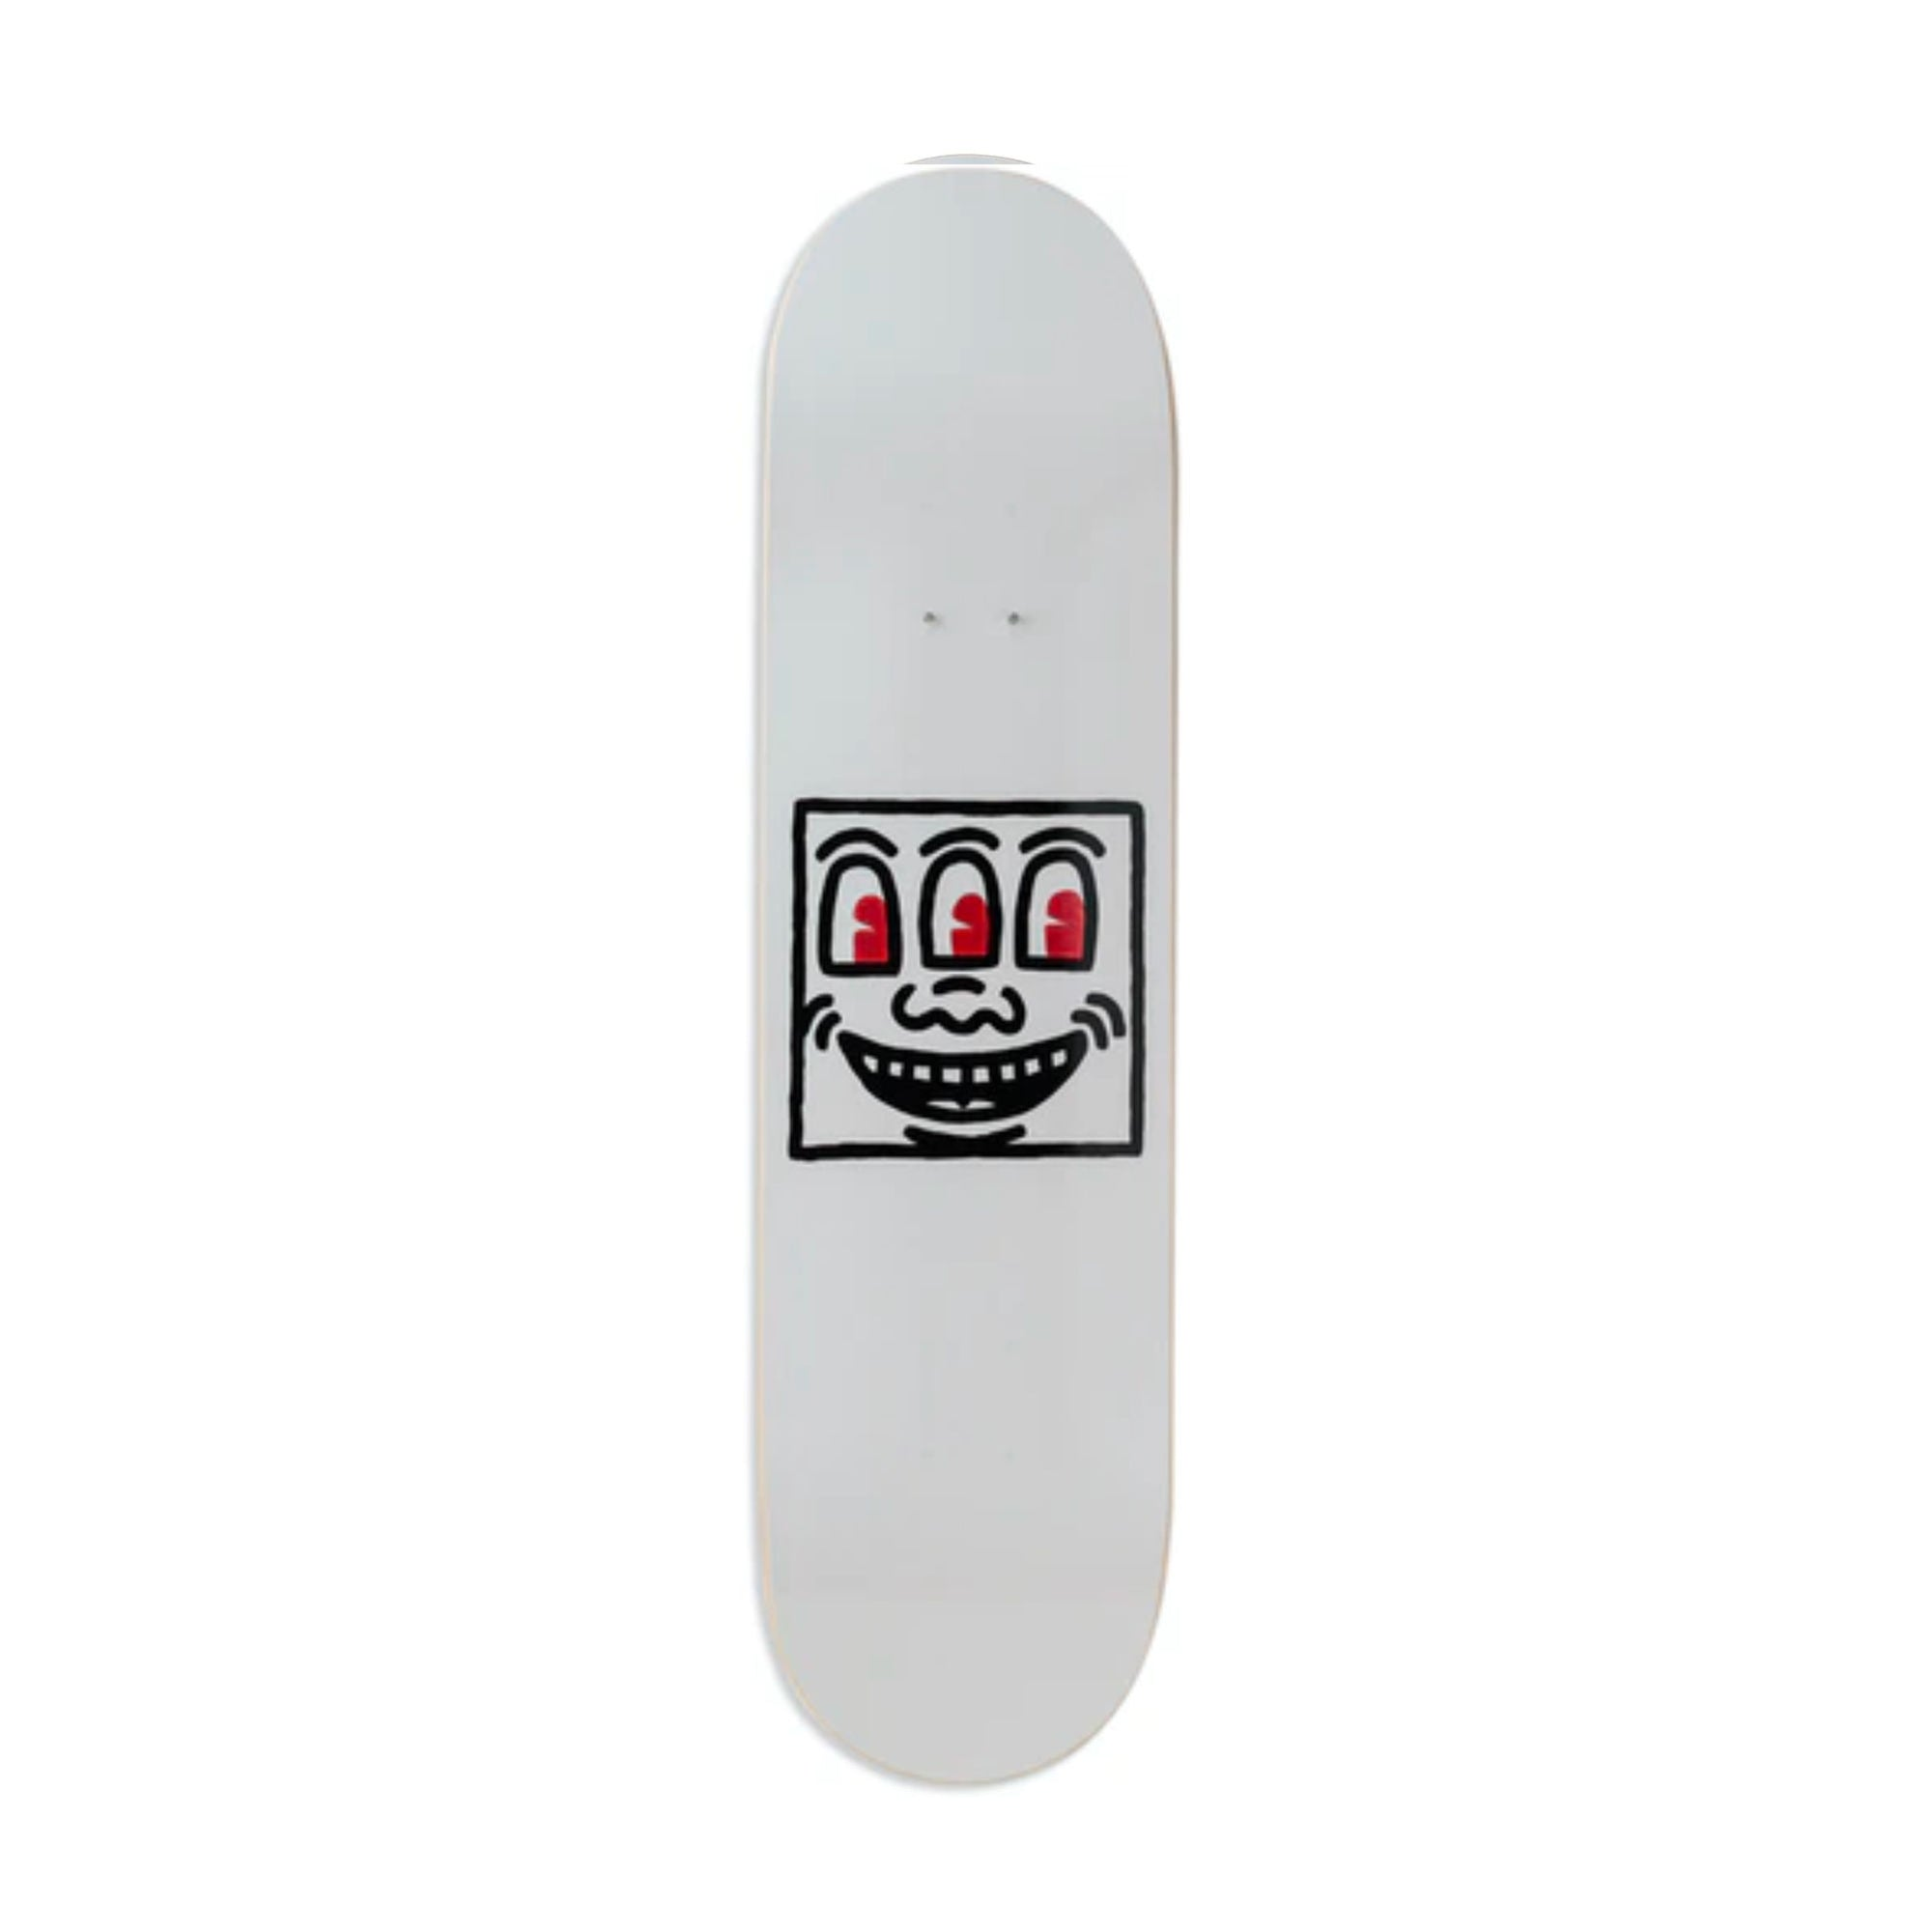 The Skateroom skateboard, Keith Haring Untitled (Smile)